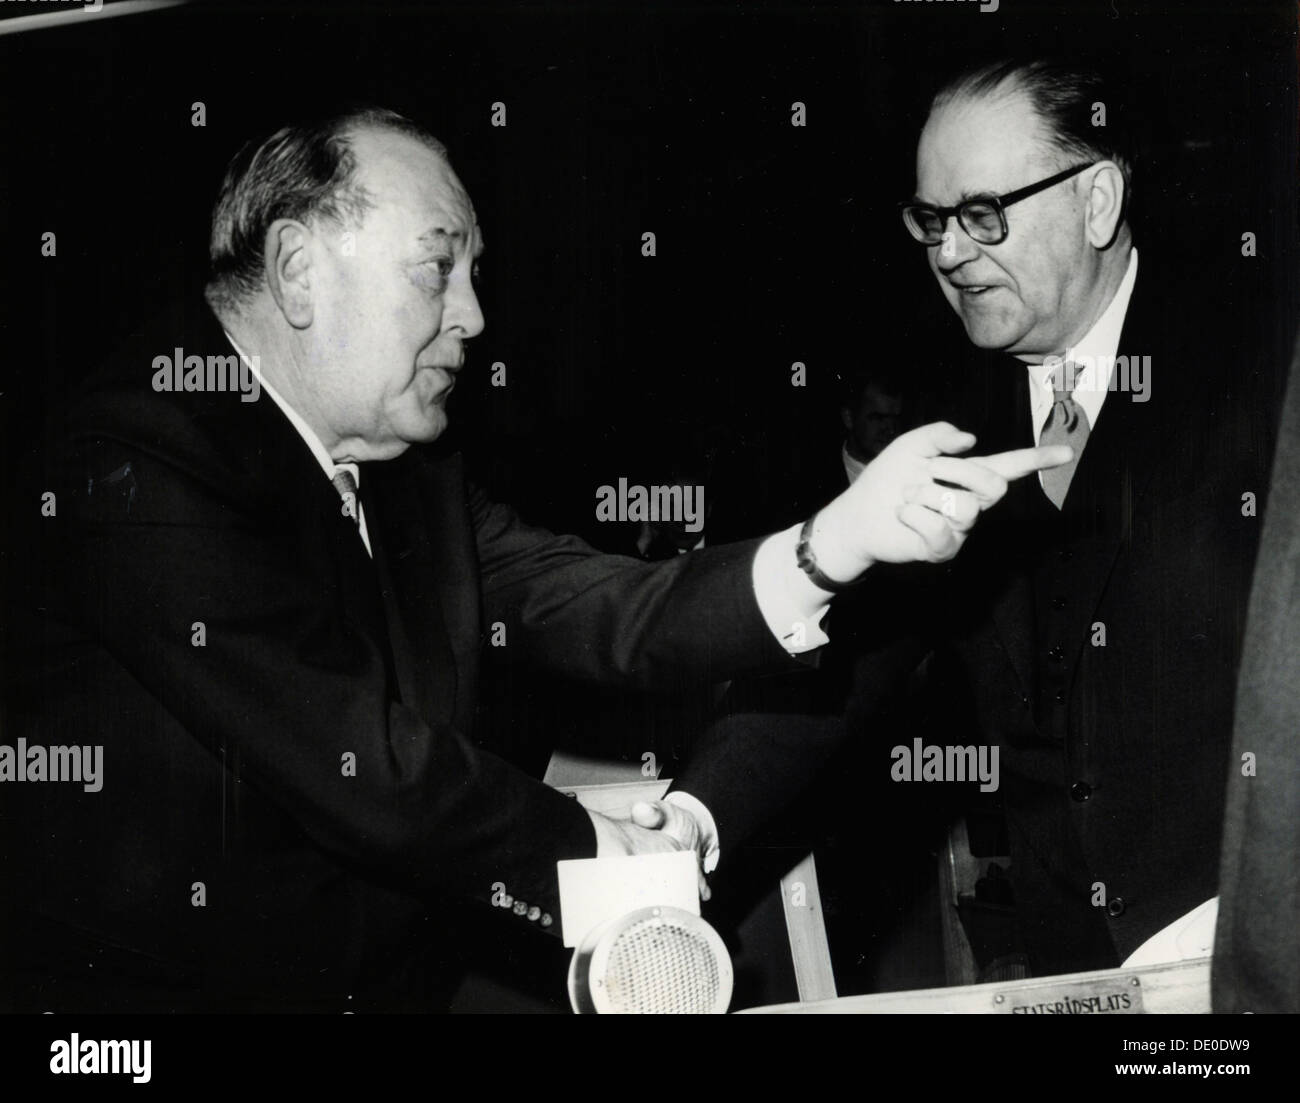 Trygve Lie, Norwegian politician, and Tage Erlander, Prime Minister of Sweden, 15 February 1964. At a meeting of Nordic Council. Lie (1896-1968) served as Foreign Minister of Norway from 1941 until 1946, when he was appointed the United Nations' first Secretary General, a post he held until 1952. He was Norway's Minister of Trade and Shipping at the time of this photograph. Erlander (1901-1985) was Sweden's Prime Minister from 1946 until 1969. From the collection of Svenskt Fotoreportages. - Stock Image